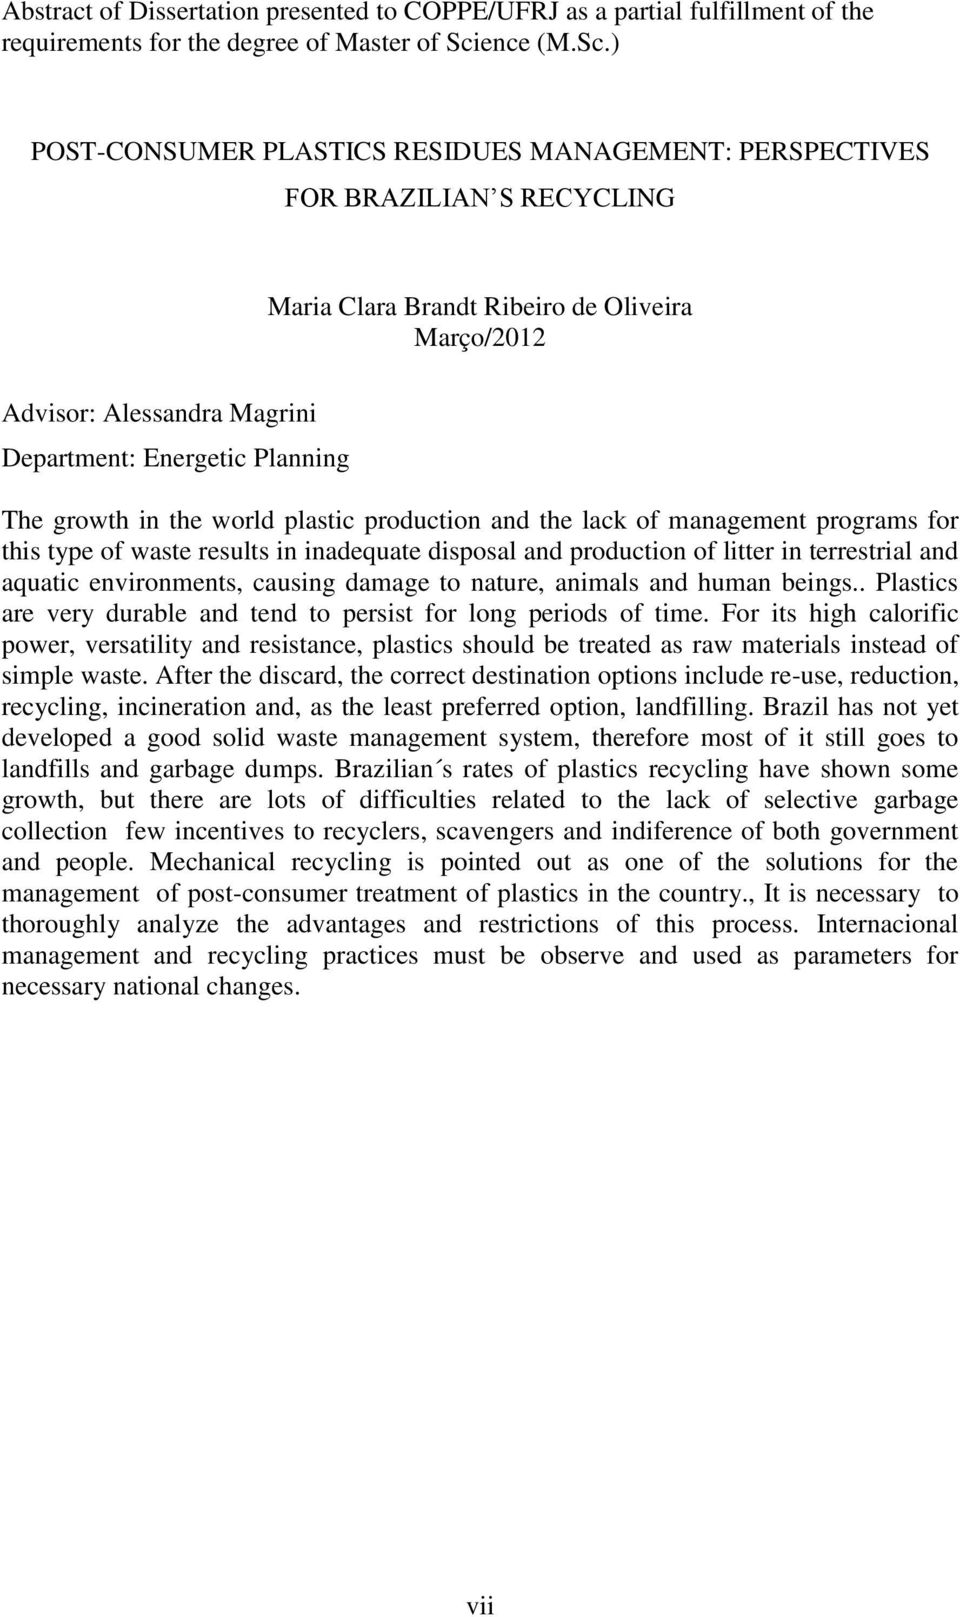 ) POST-CONSUMER PLASTICS RESIDUES MANAGEMENT: PERSPECTIVES FOR BRAZILIAN S RECYCLING Maria Clara Brandt Ribeiro de Oliveira Março/2012 Advisor: Alessandra Magrini Department: Energetic Planning The